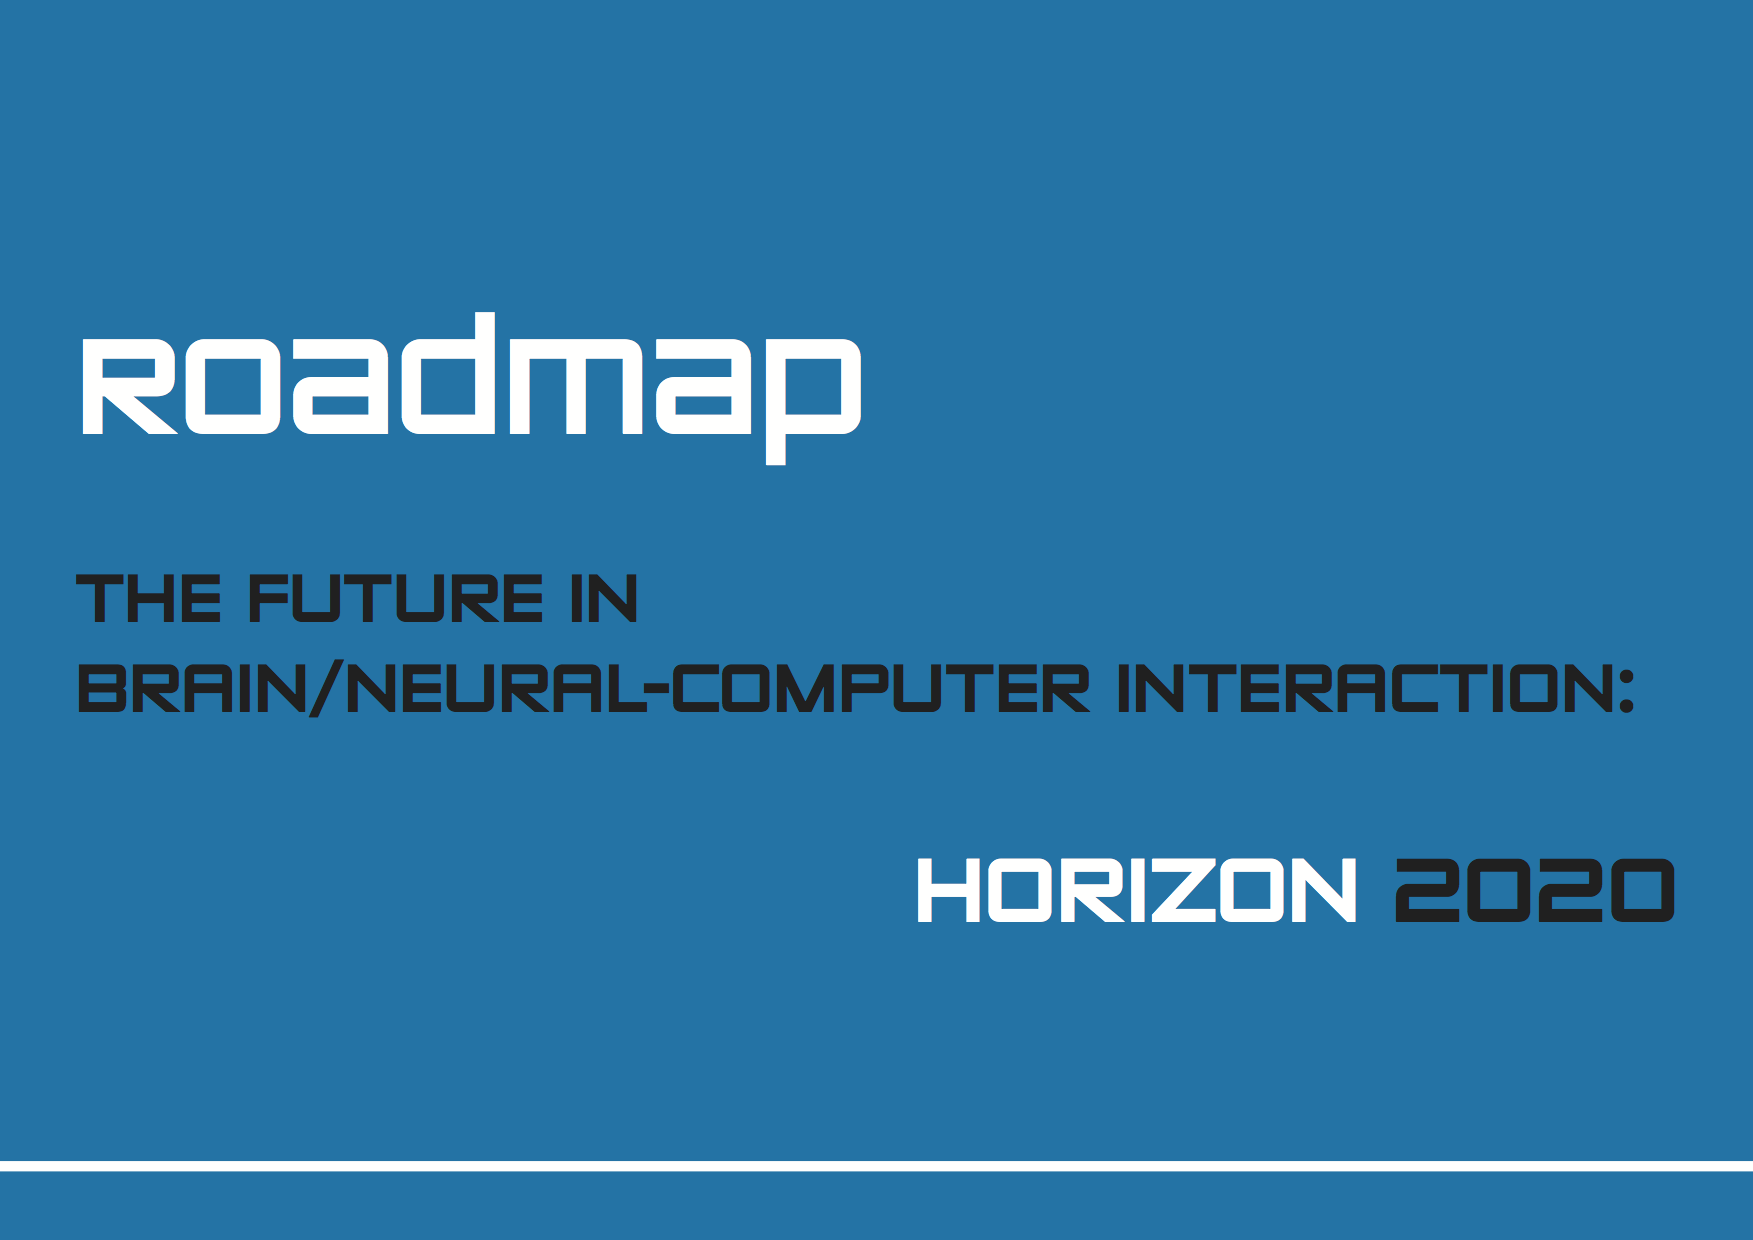 Roadmap BNCI Horizon 2020 Frontpage